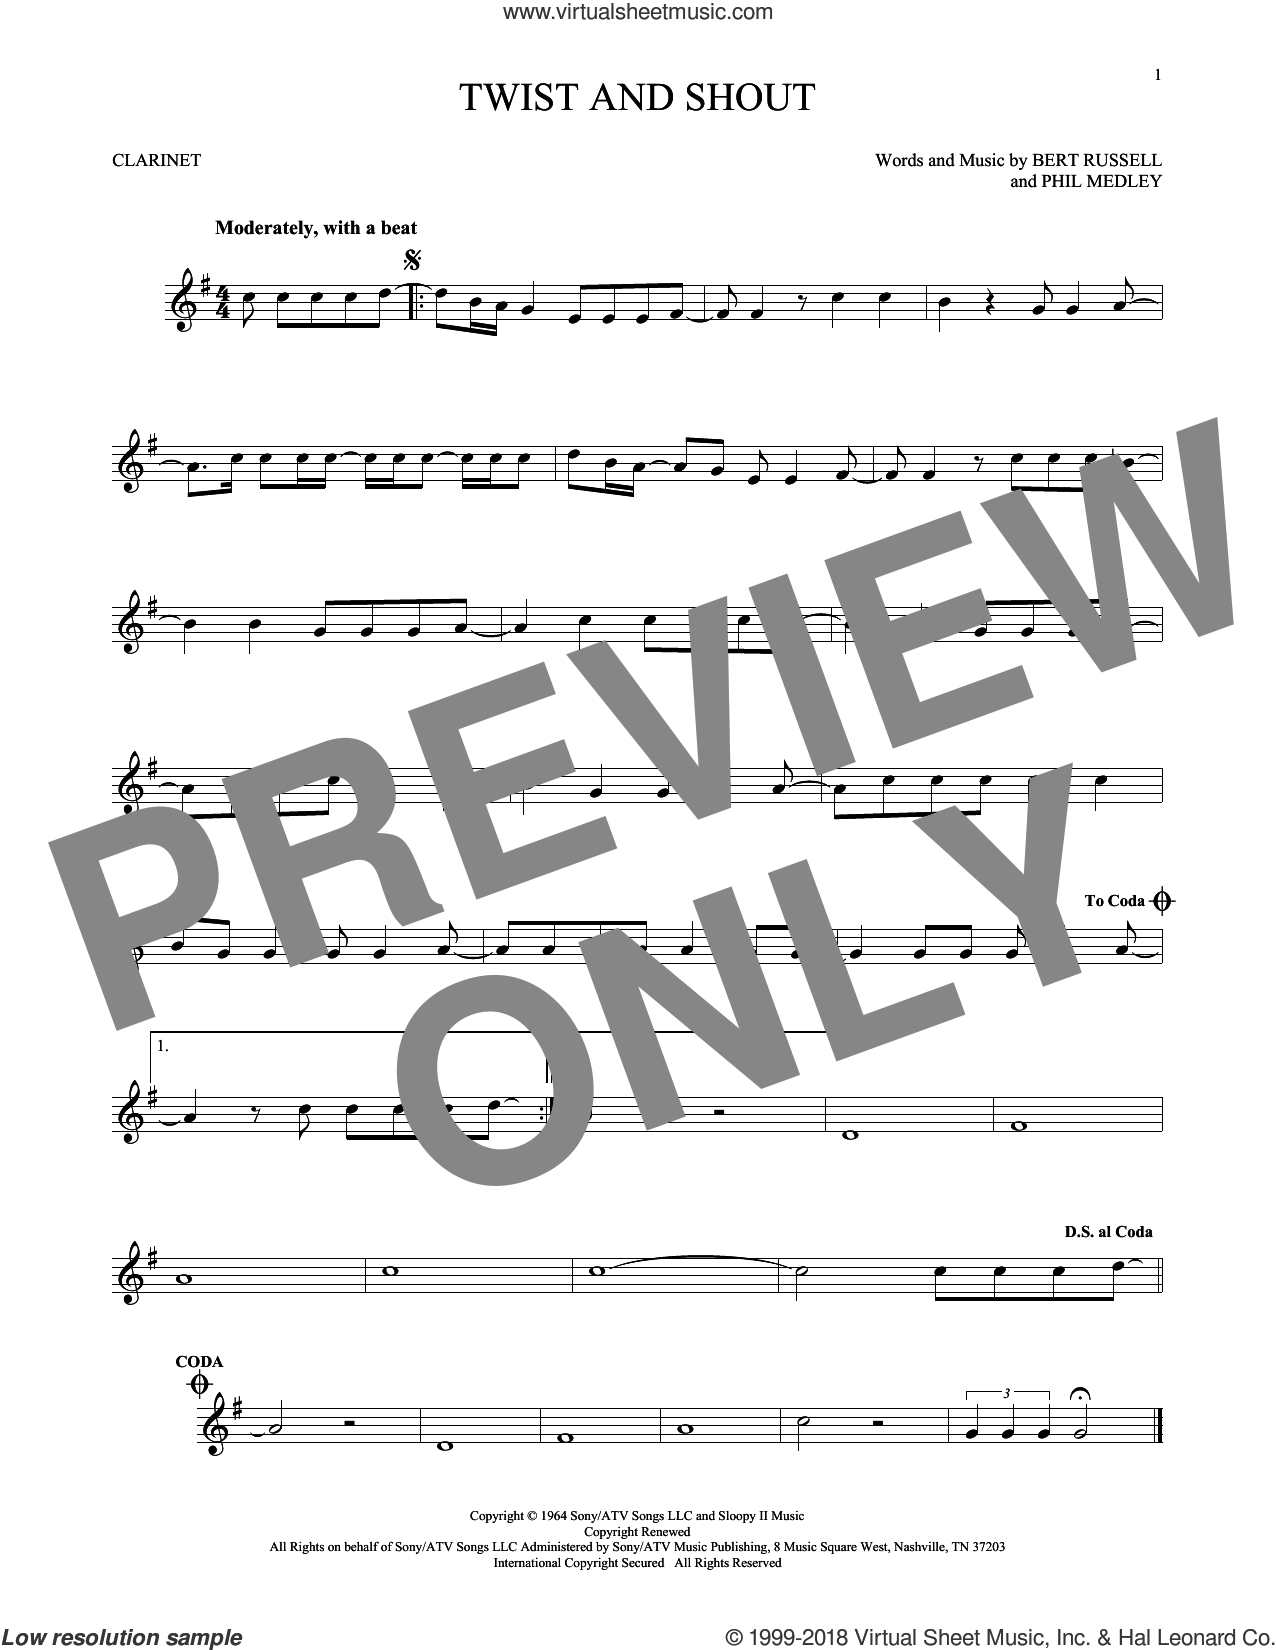 Twist And Shout sheet music for clarinet solo by The Beatles, The Isley Brothers, Bert Russell and Phil Medley, intermediate skill level